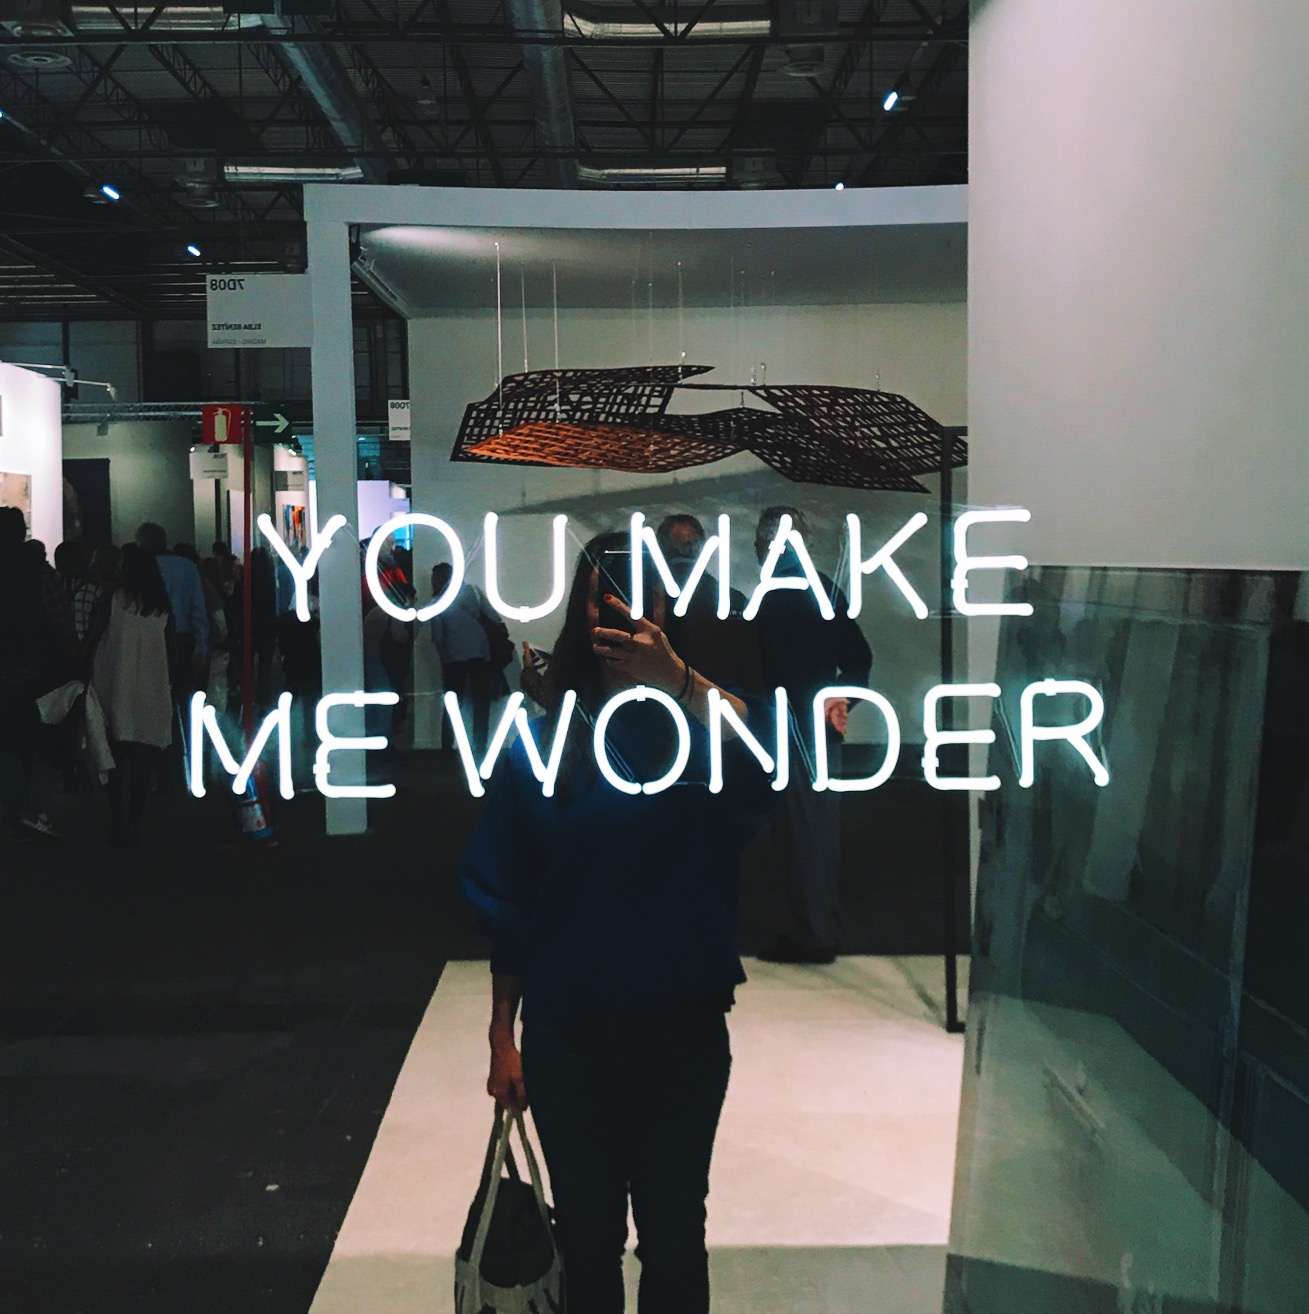 I'm not immune to selfies, I'm only human. This is me in front of Jeppe Hein's You Make Me Wonder (1974).